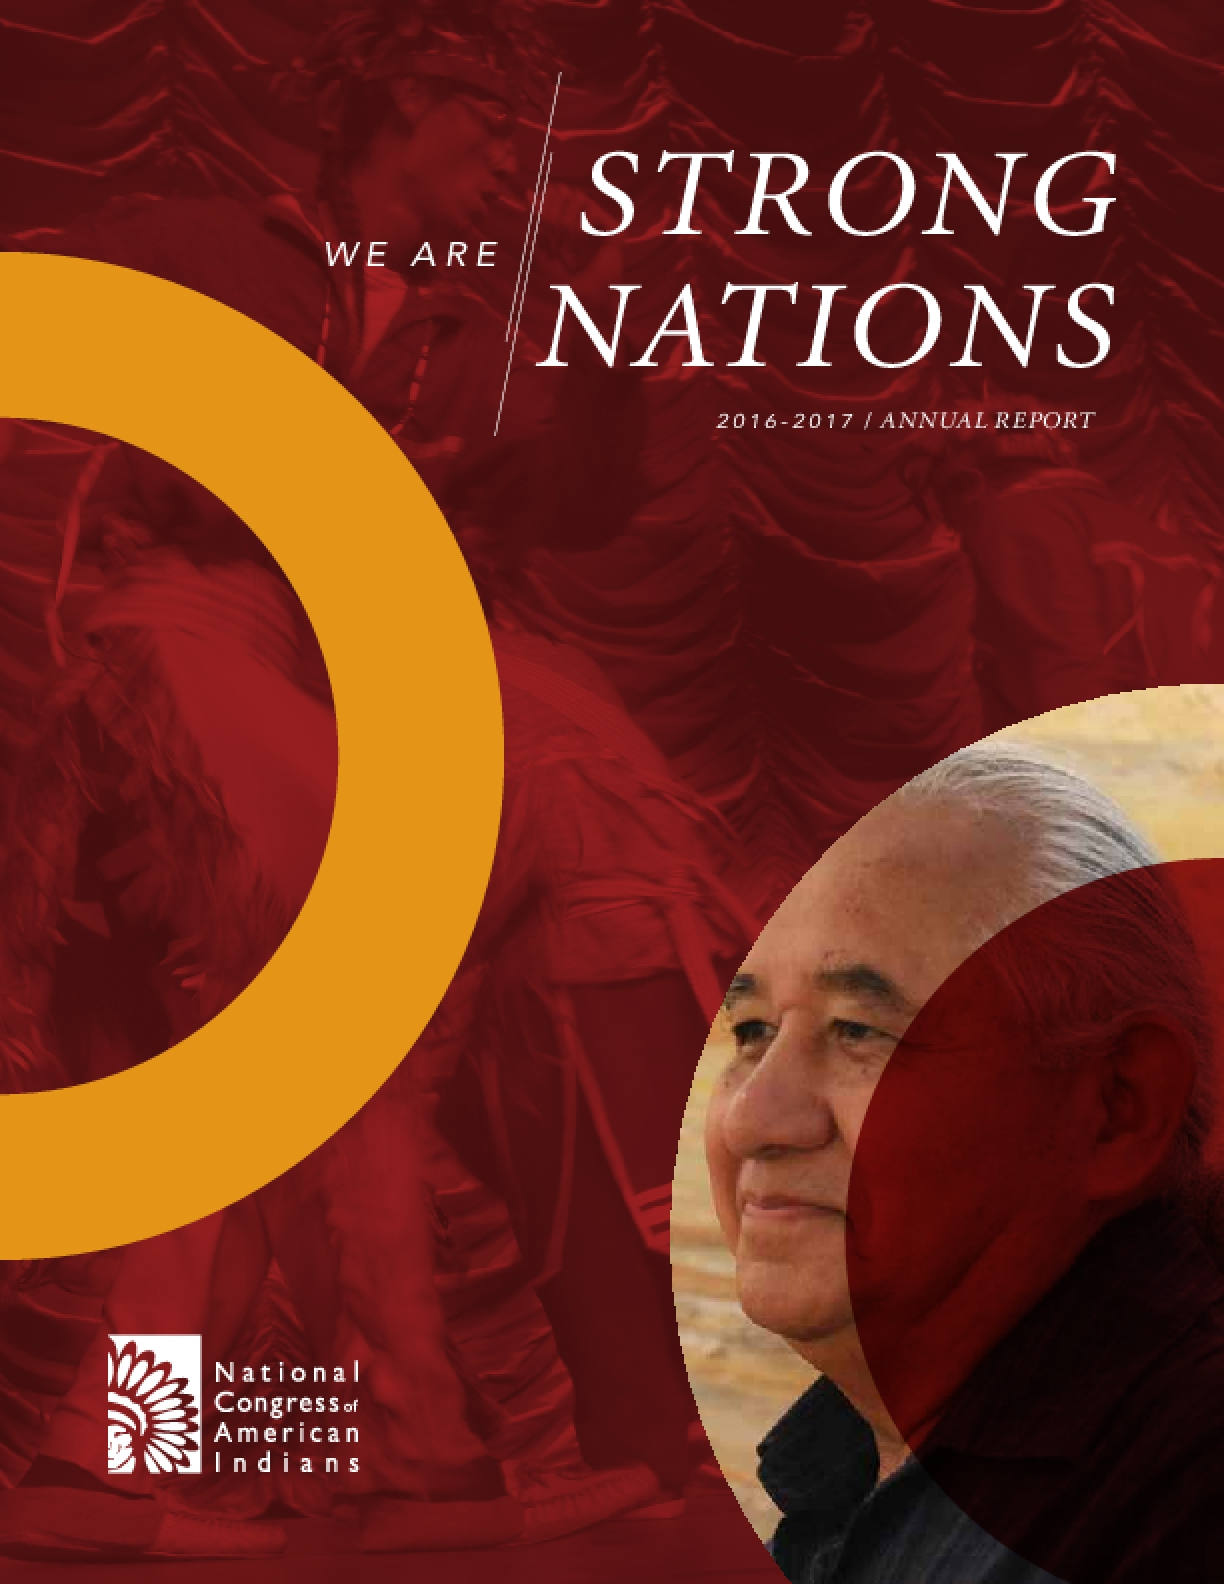 We are Strong Nations: 2016-2017 Annual Report